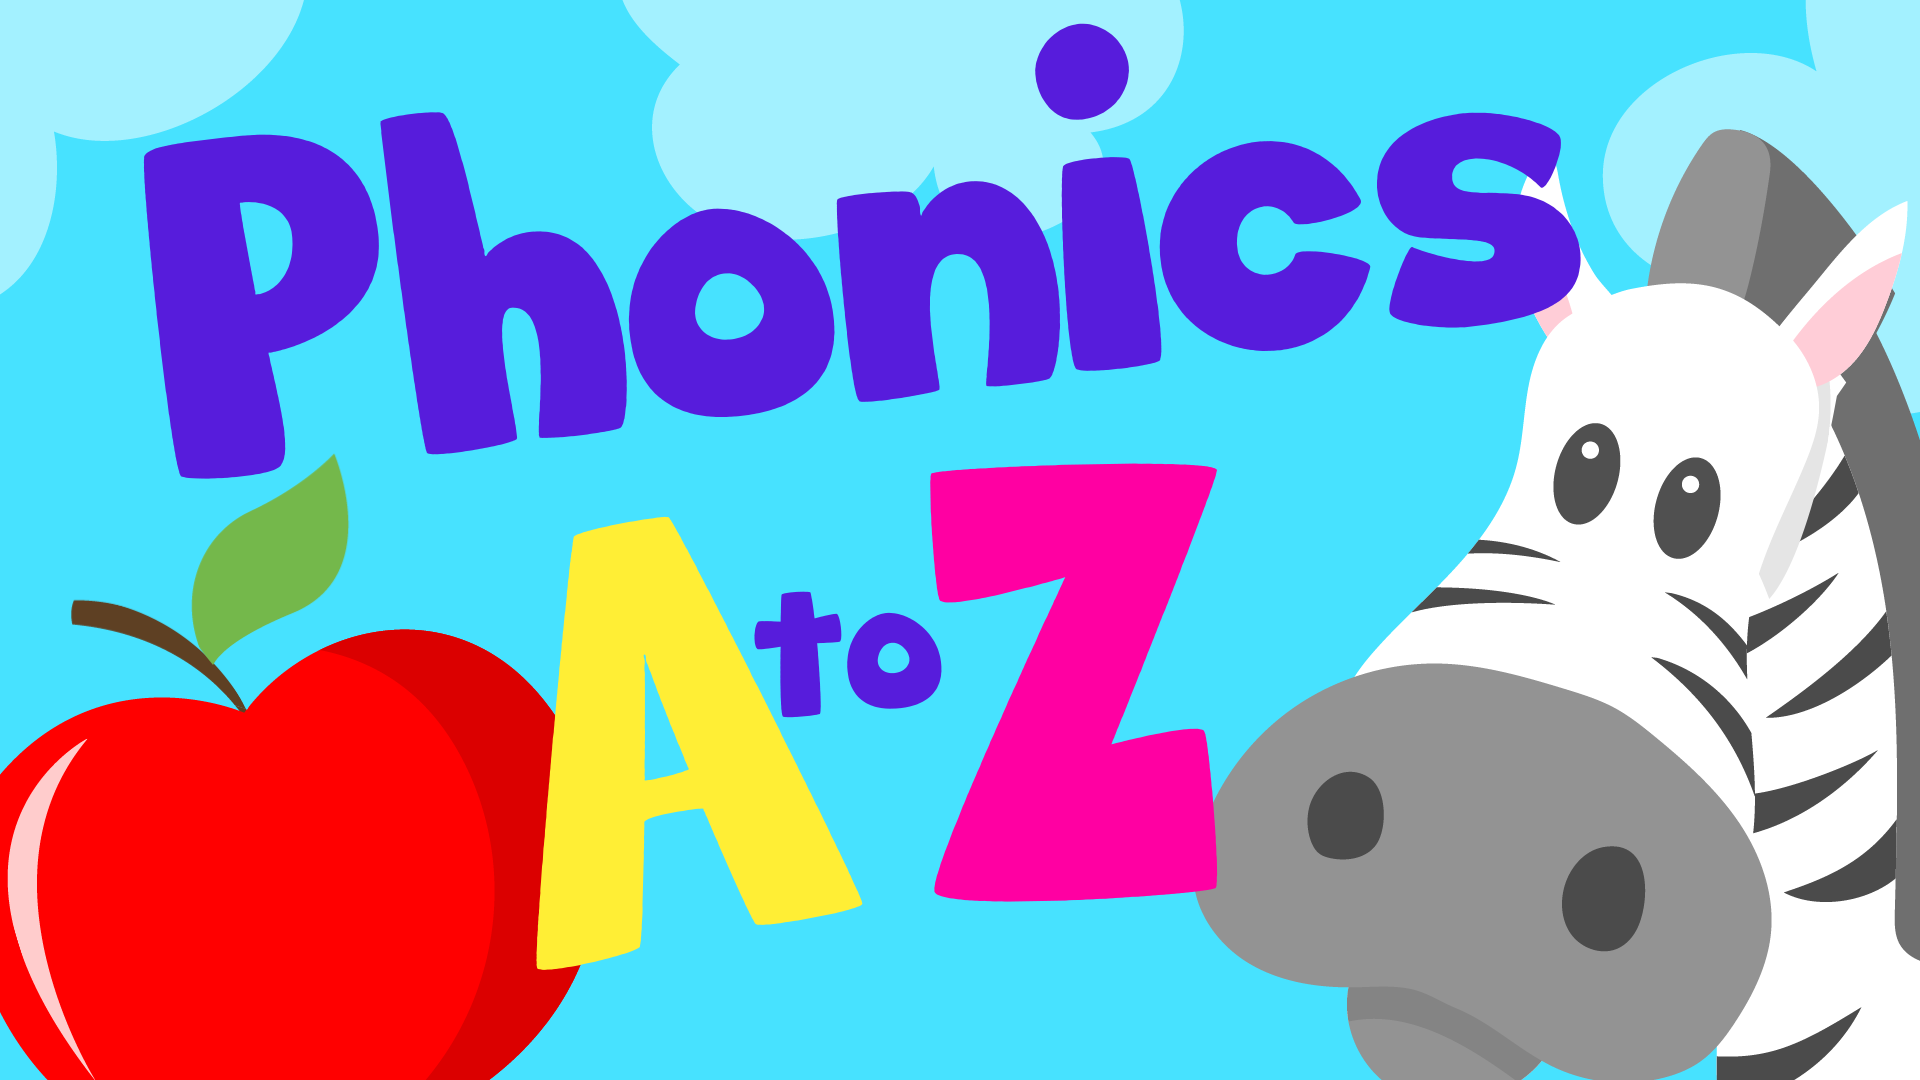 PHONICS A to Z for kids - Alphabet Letter Sounds | Lotty Learns